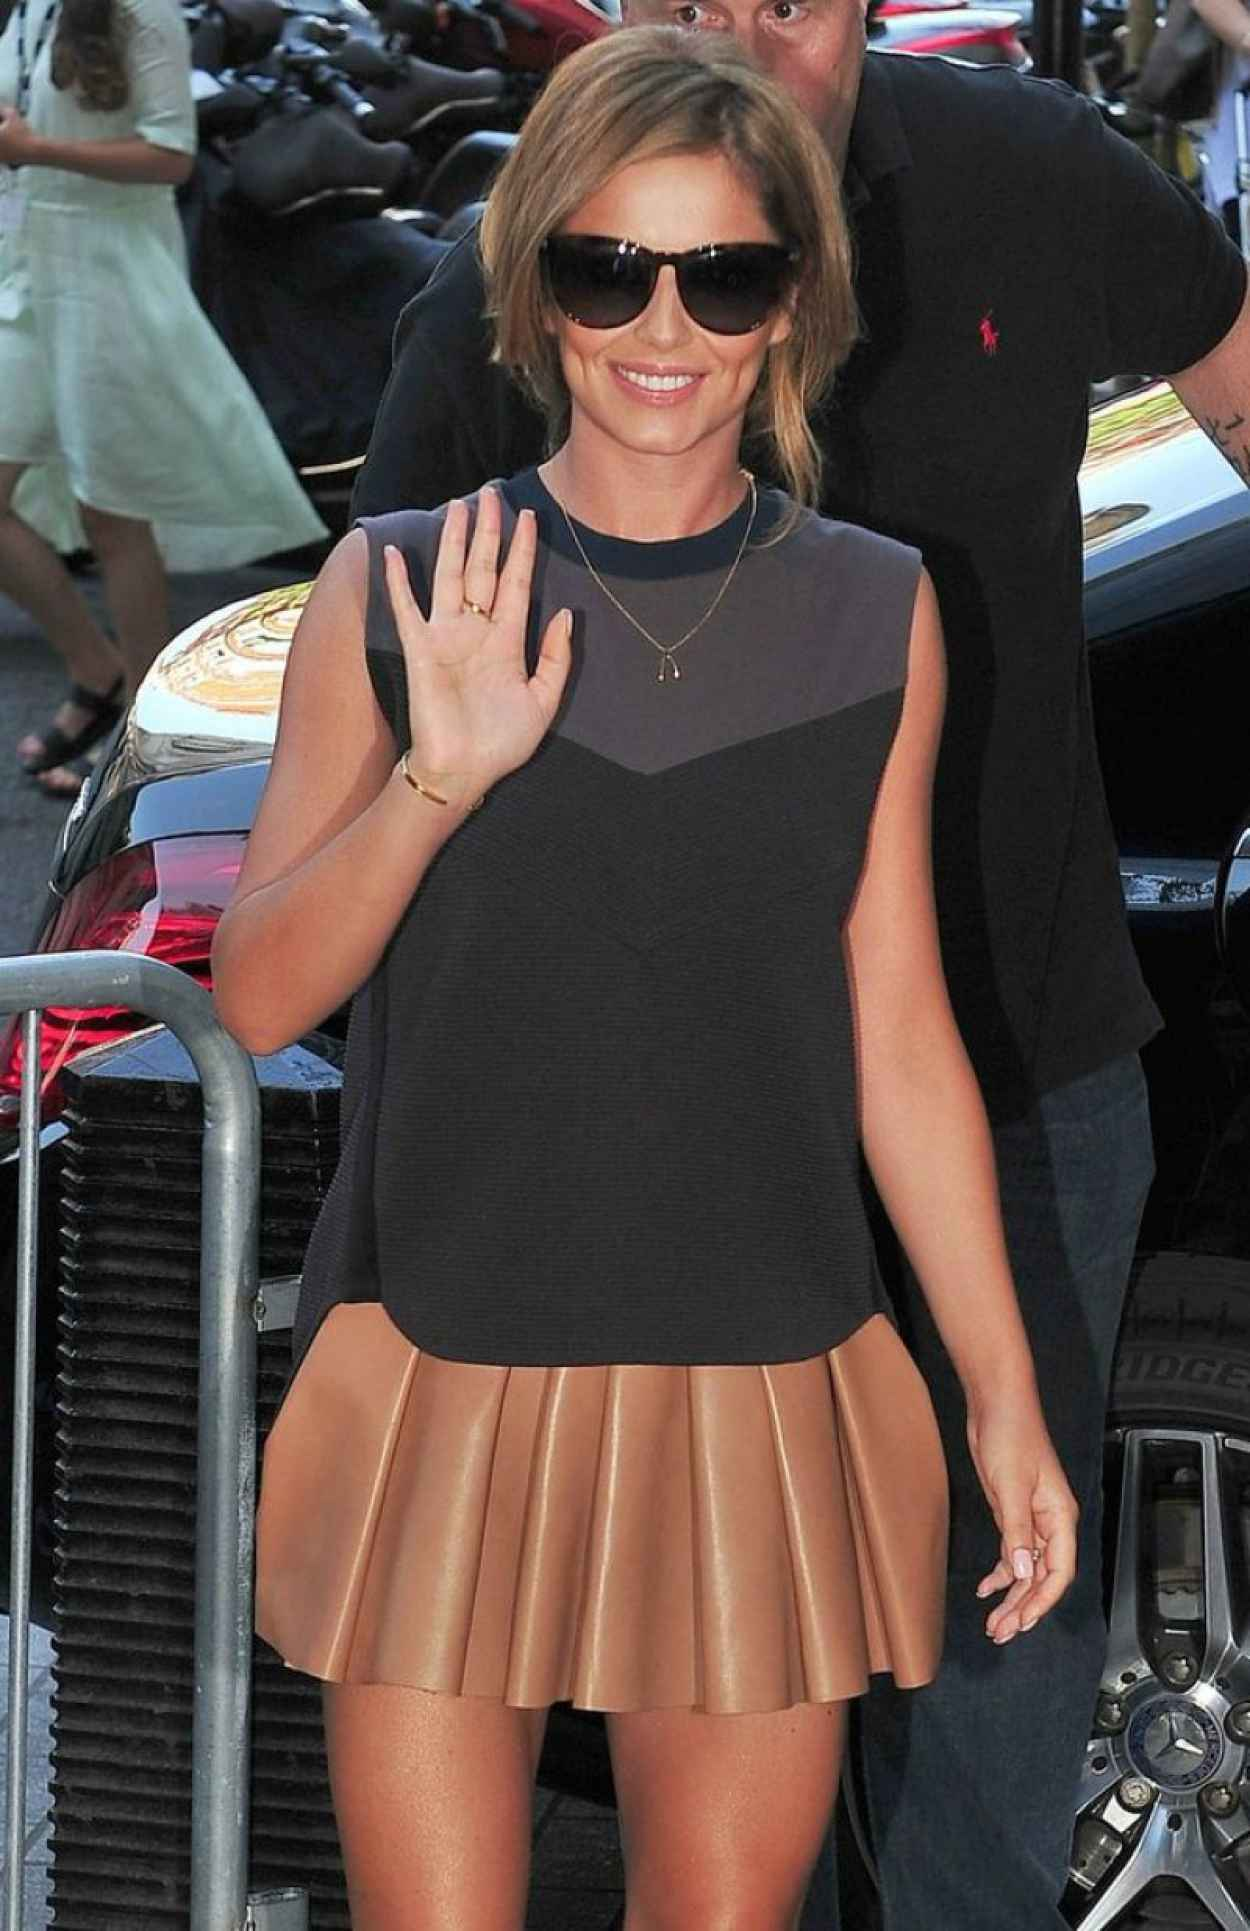 Cheryl Cole (Cheryl Fernandez-Versini) Arriving at Radio1 Studios in London - July 2015-1